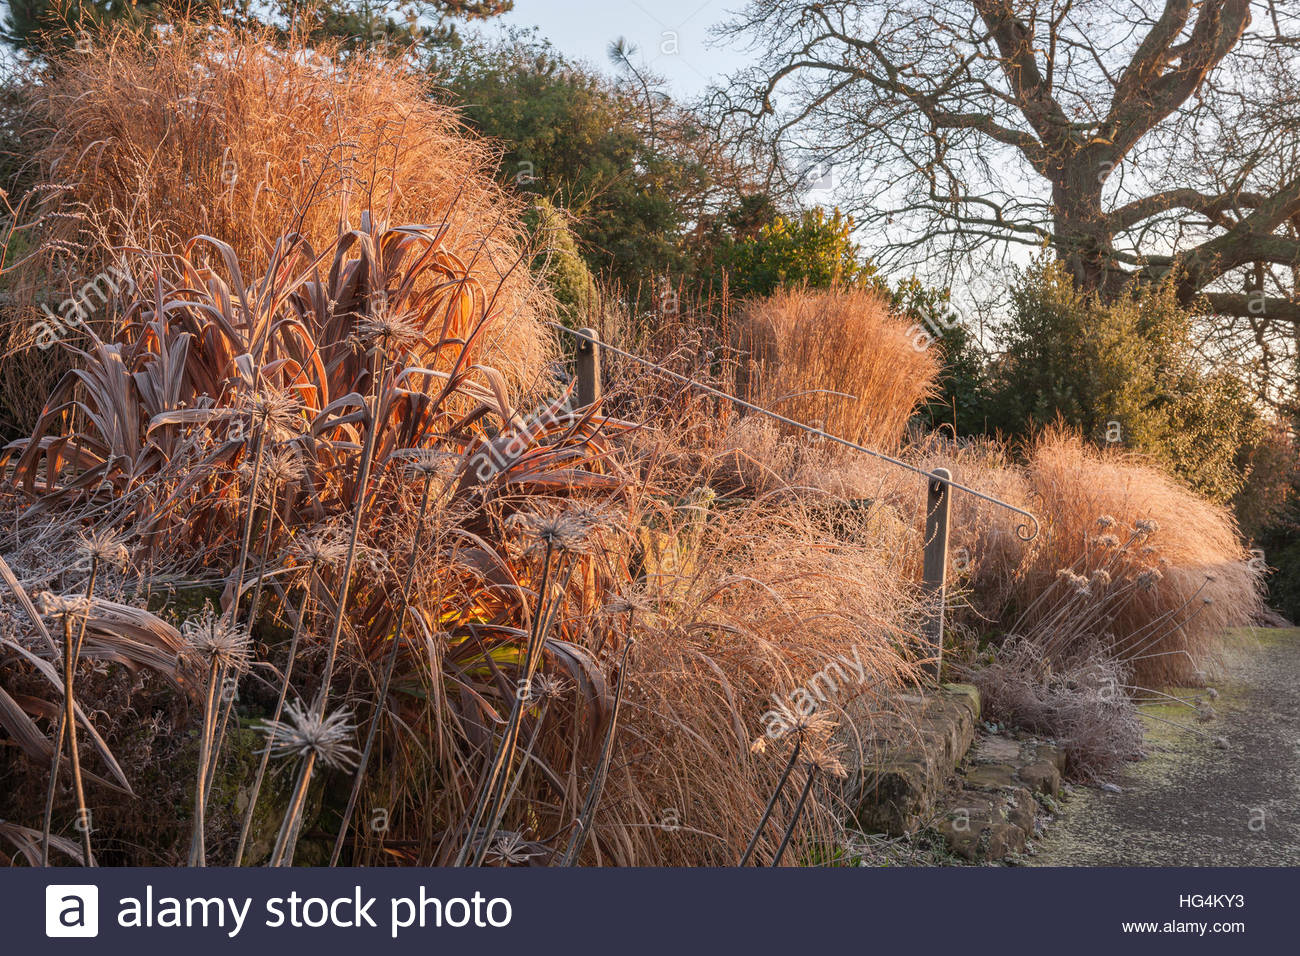 perennials trees shrubs winter frost - Stock Image